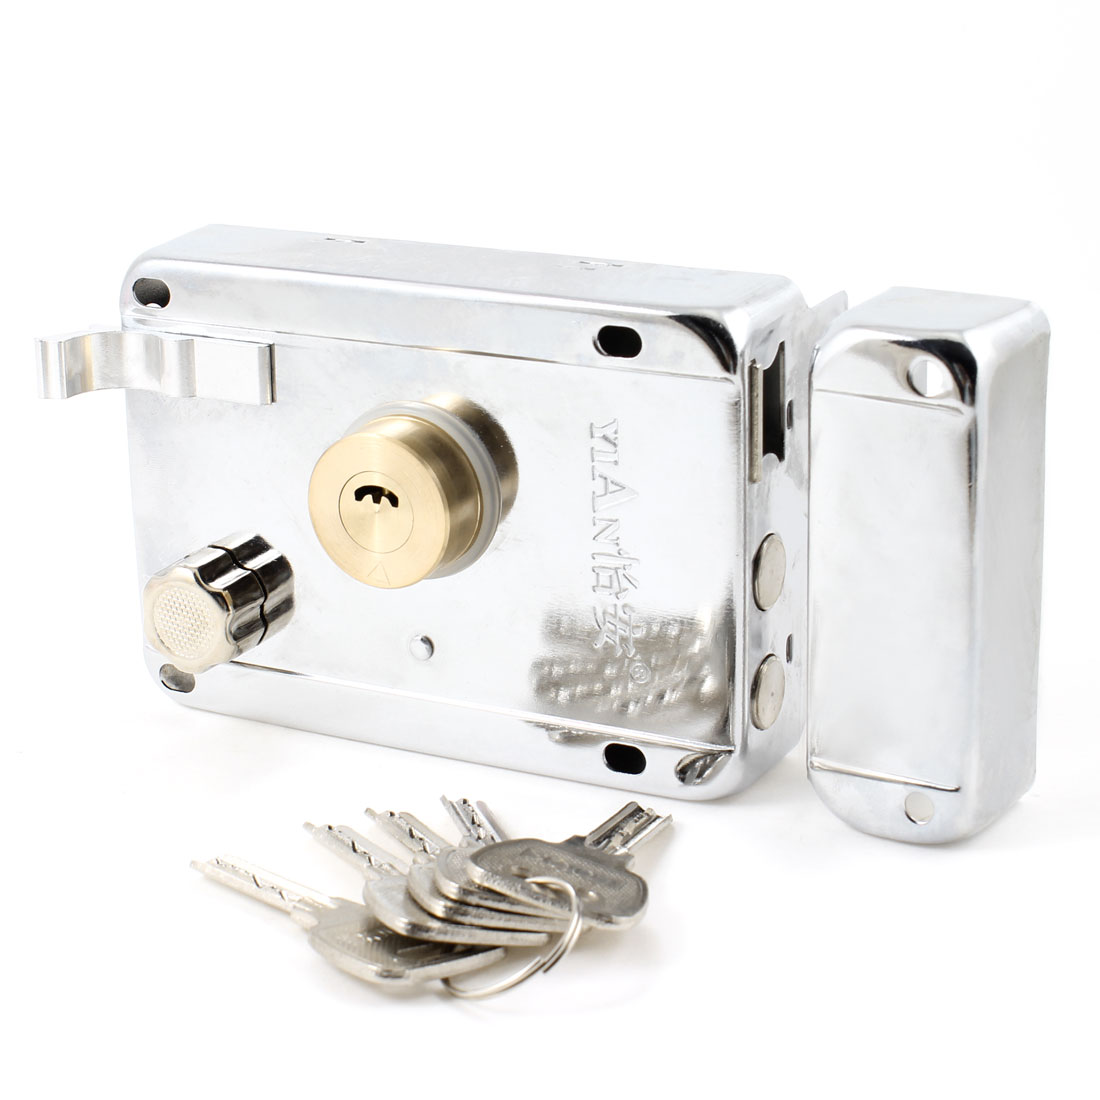 Office Silver Tone Metal Left Hand Door Deadbolt Rim Lock + 5 Keys